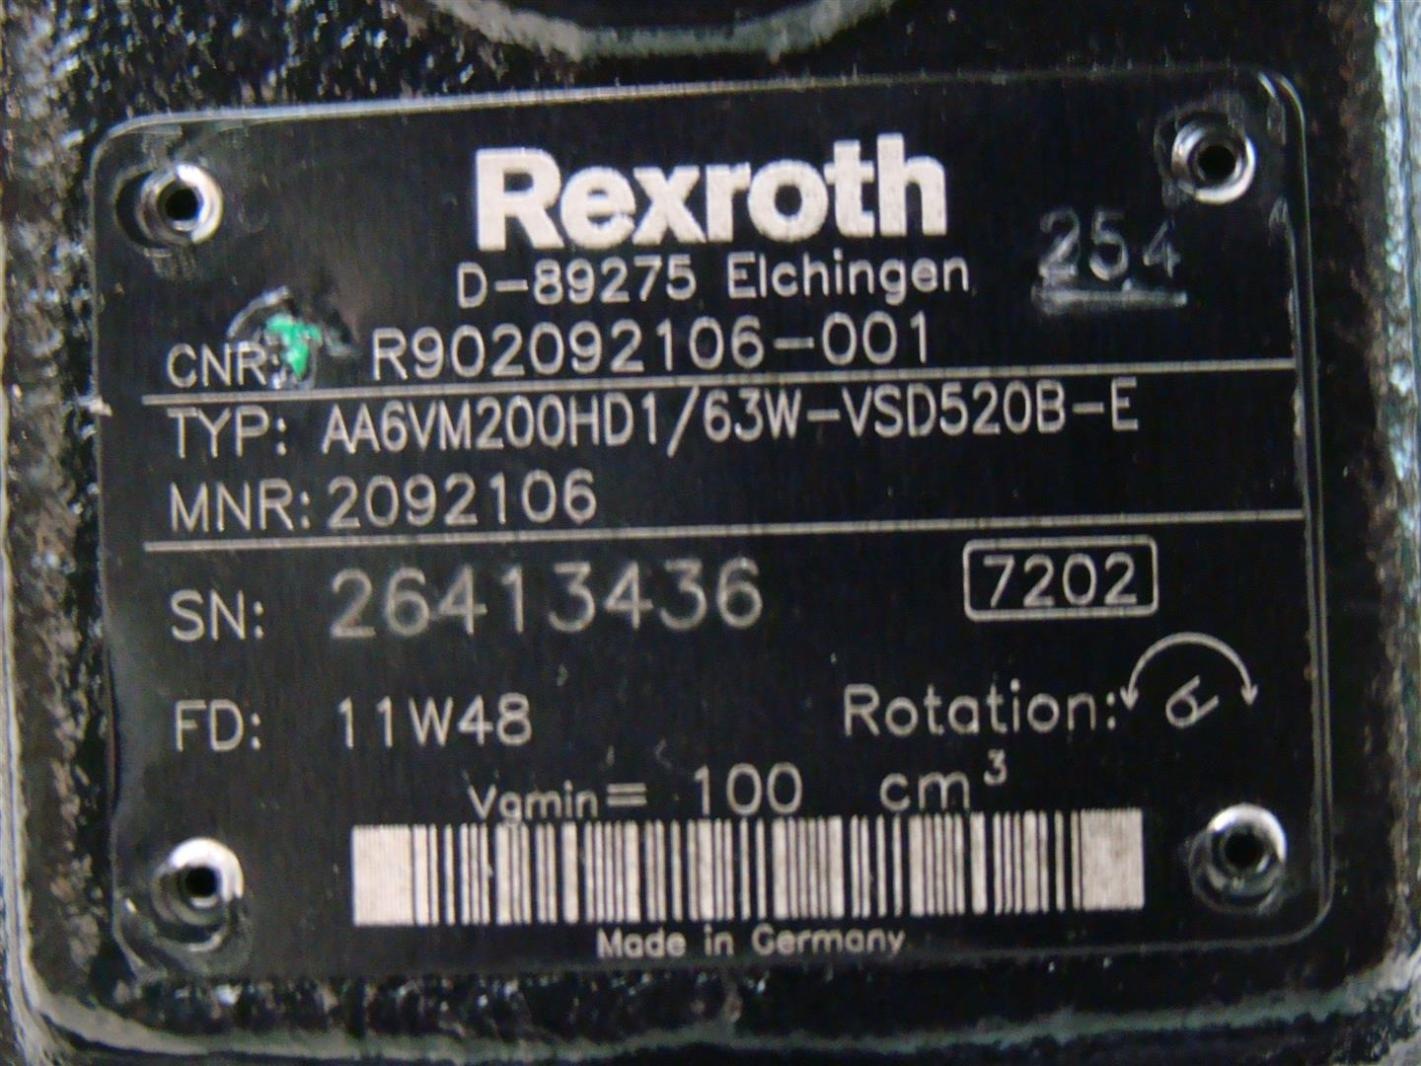 Rexroth Hydraulic Motor Variable Displacment 11W48 AA6VM200HD1/63W-VSD520B-E